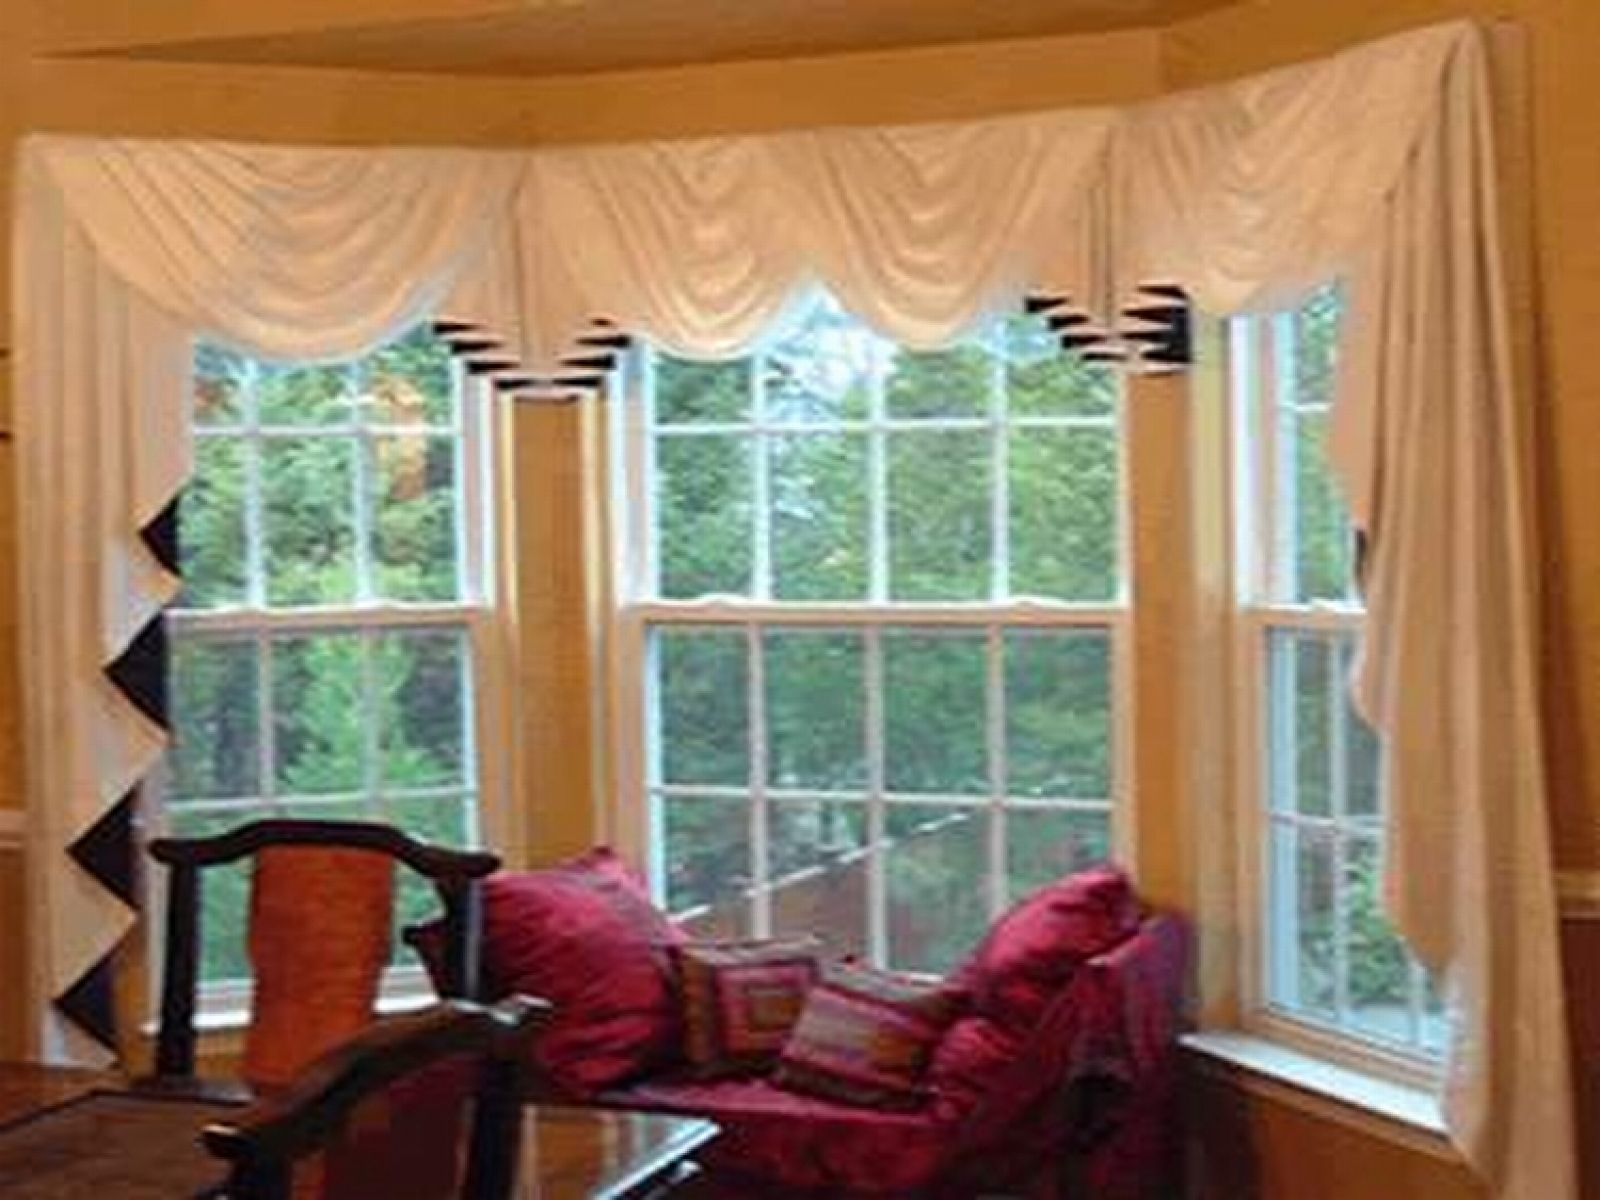 Curtain rods for bay windows australia and cafe curtain rods for bay windows